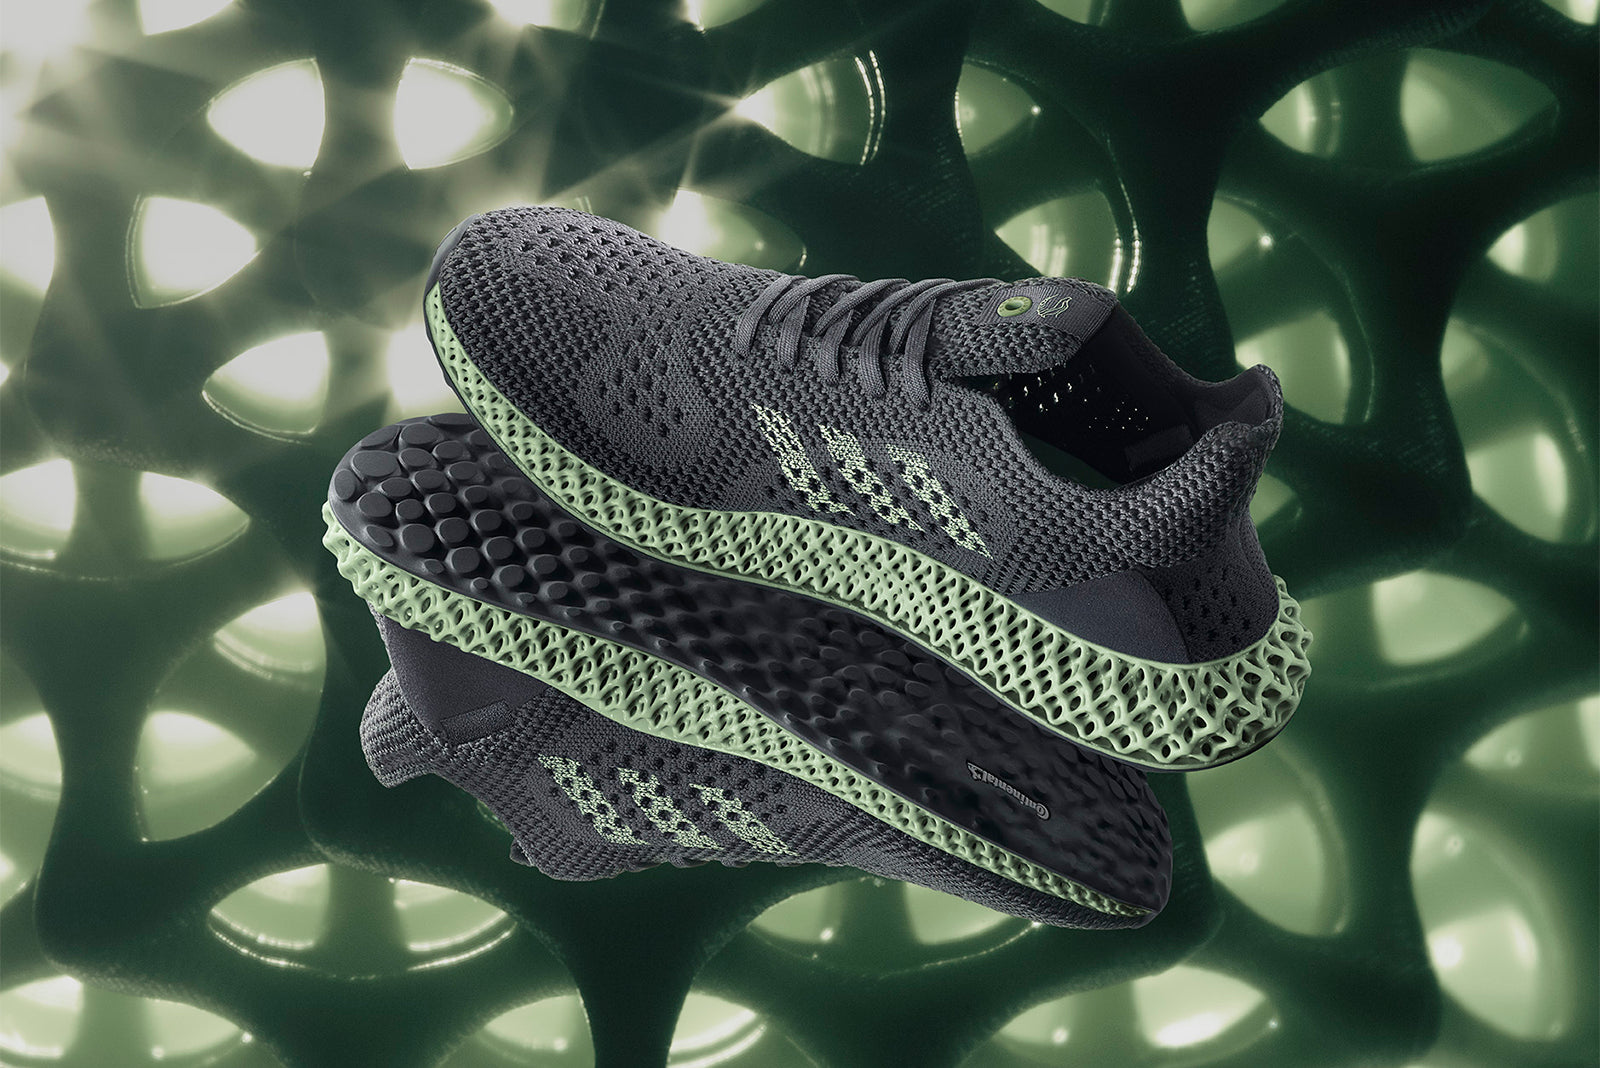 8186c466e7eb The final instalment from the adidas CONSORTIUM RUNNER 4D series is an  inhouse model. This follows on from SNS